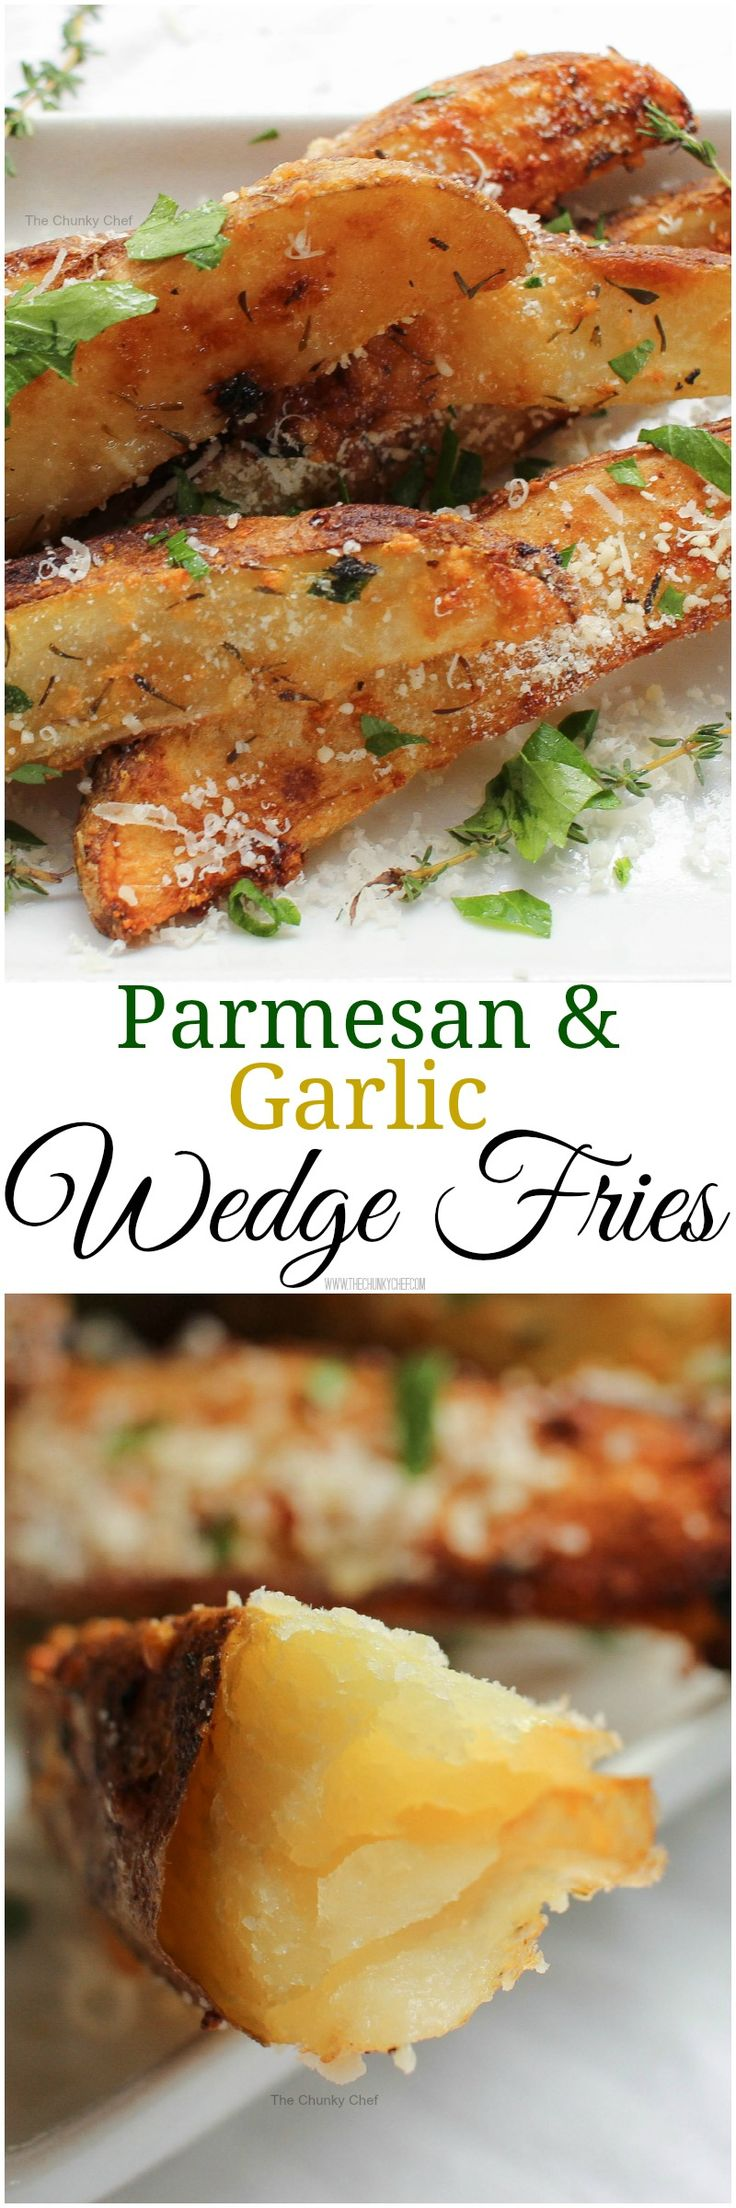 Parmesan and Garlic Wedge Fries - Sometimes you just want a good fry…